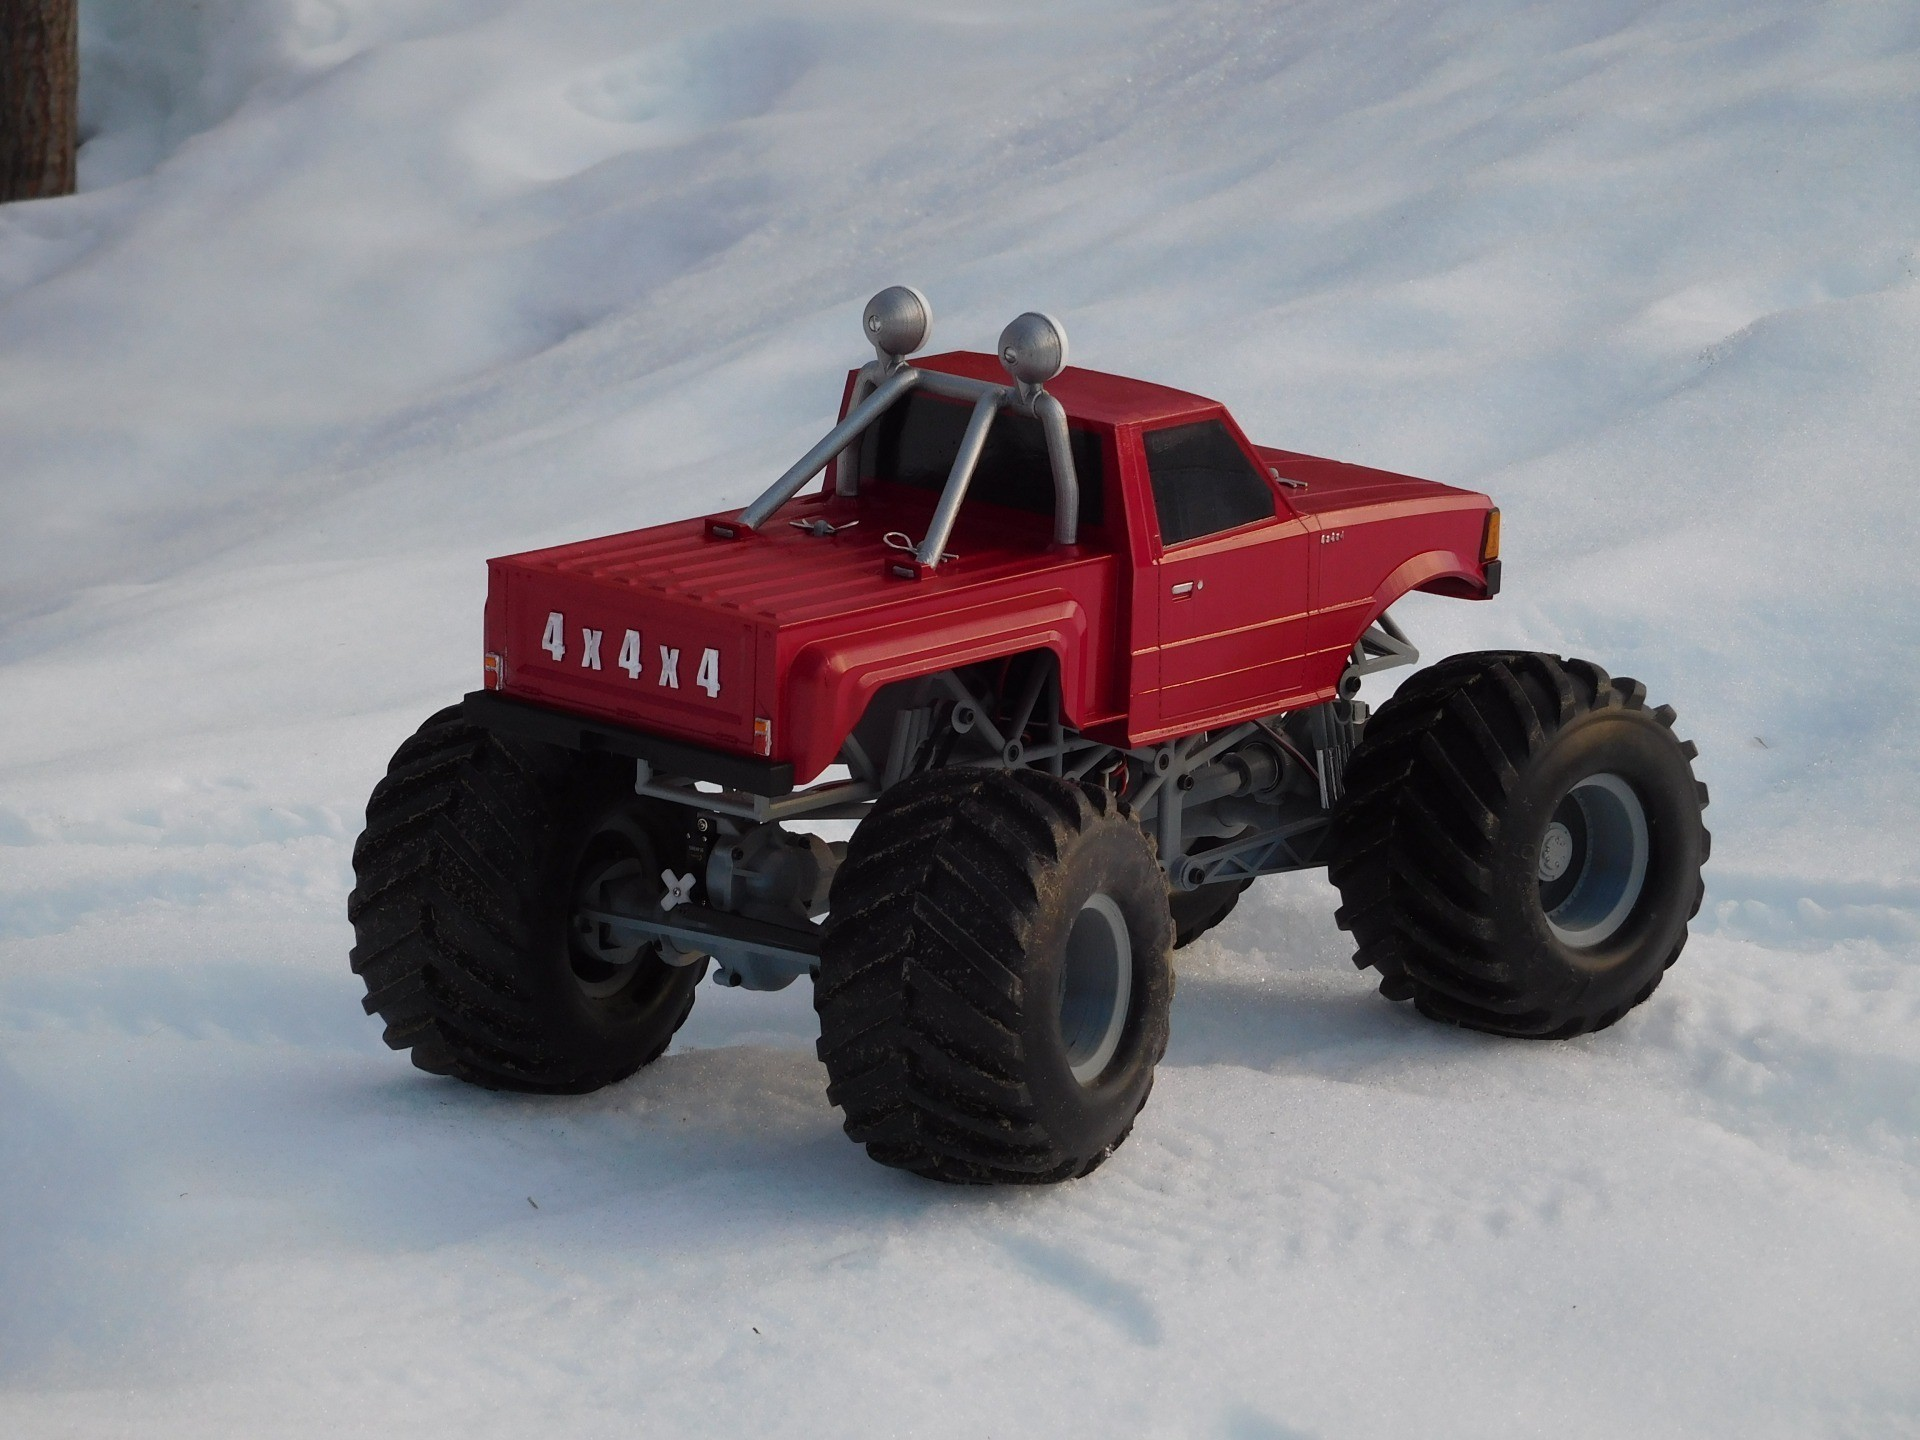 DSCN1203.JPG Download free STL file Fully printable Monster Truck • 3D printer design, tahustvedt